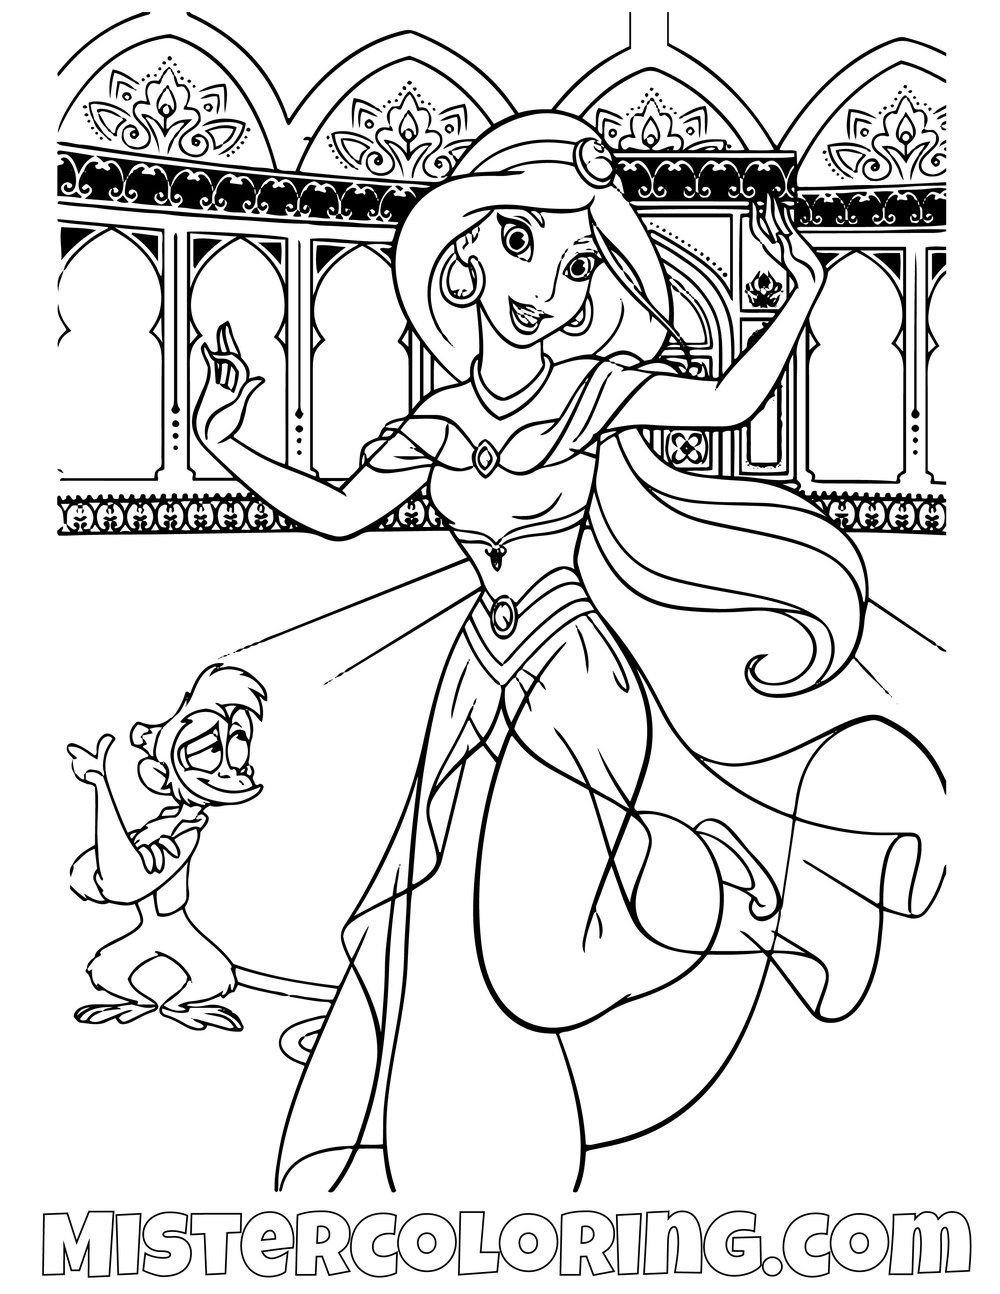 Princess Jasmine And Abu Dancing Aladdin Coloring Page Disney Coloring Pages Disney Princess Coloring Pages Coloring Pages